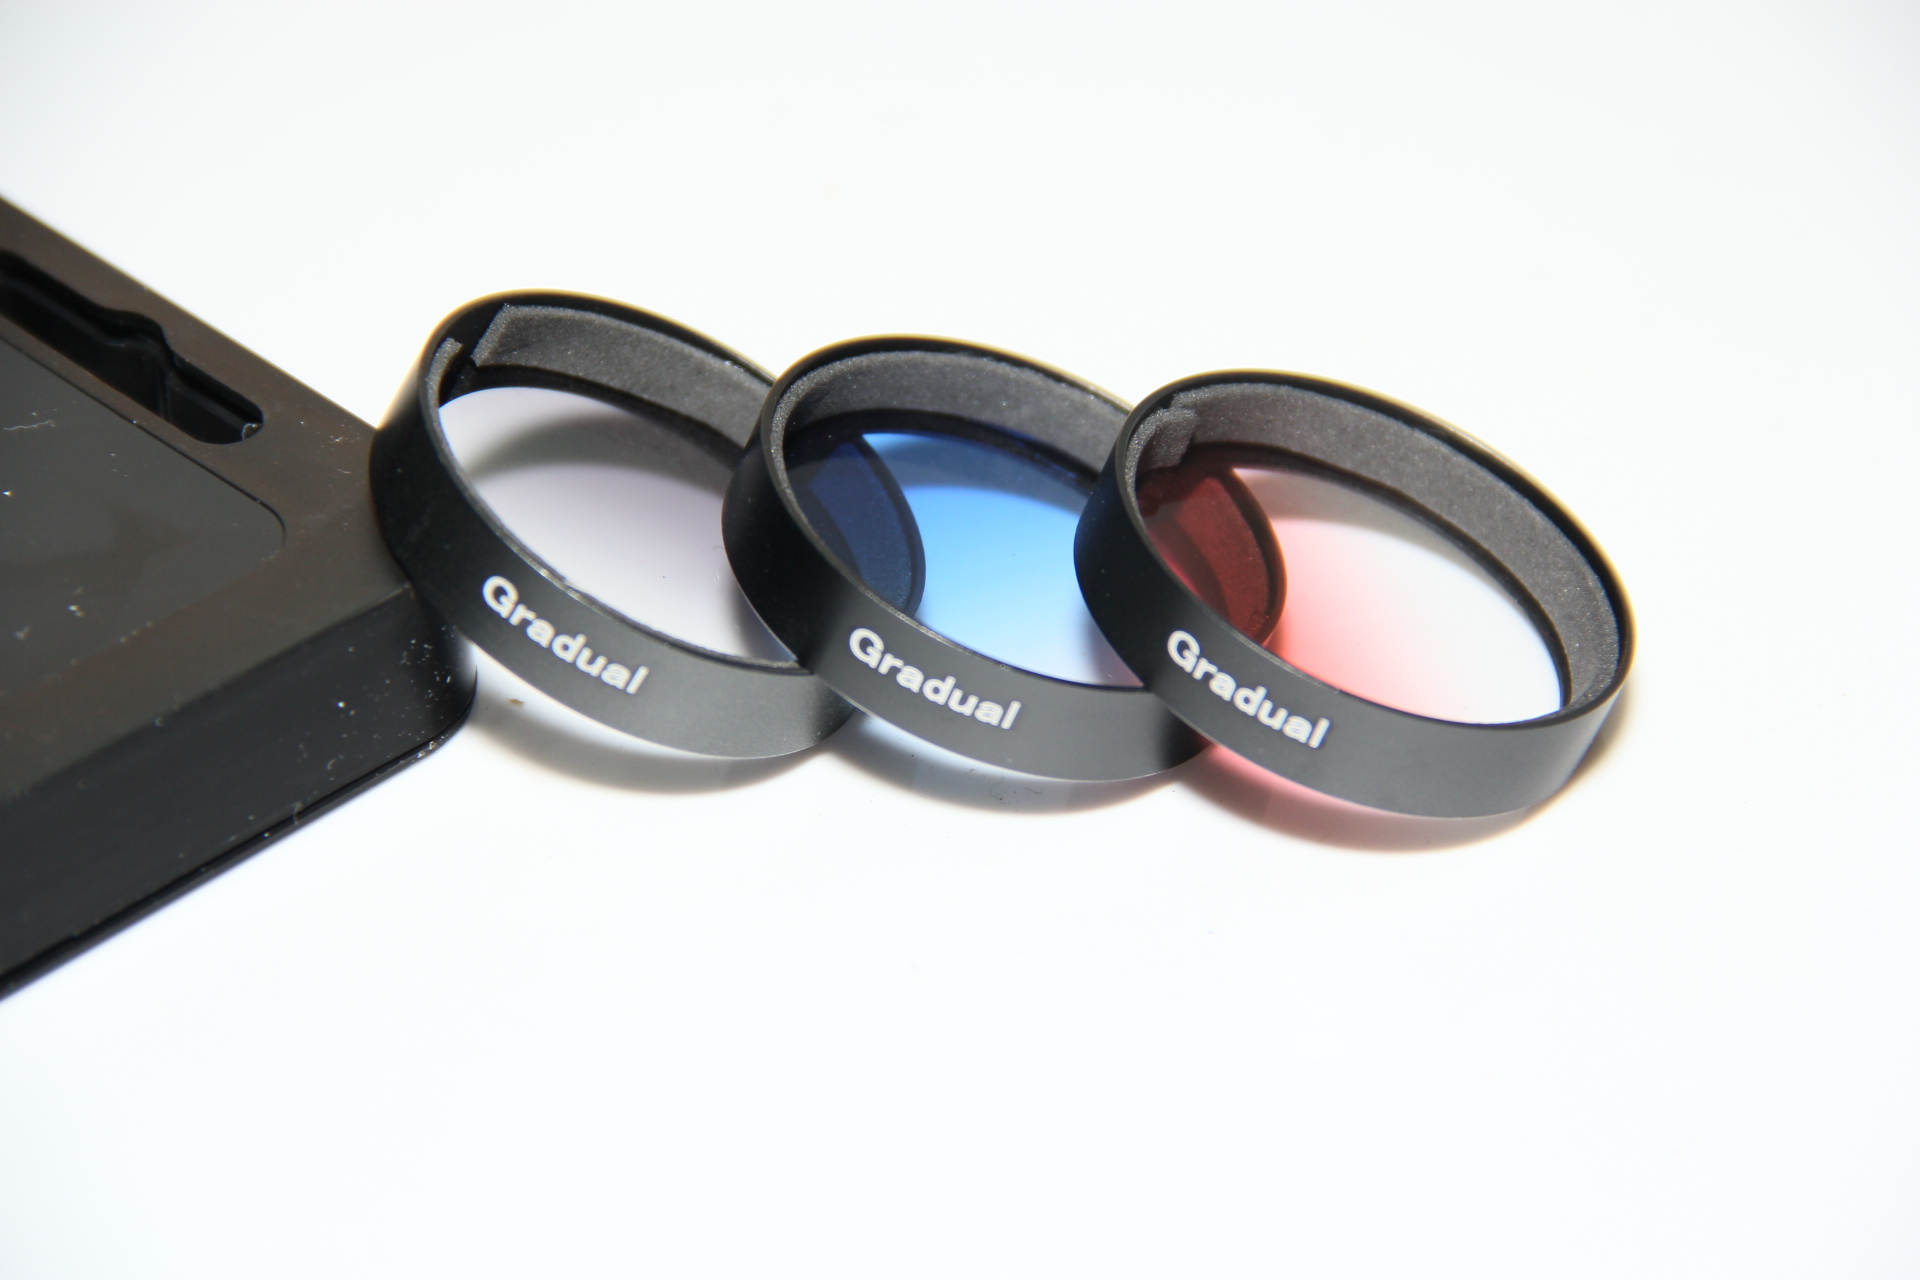 Graduated gradual Color ND Grey Orange Blue red Lens Filter Protector for DJI Phantom 3 airial Camera